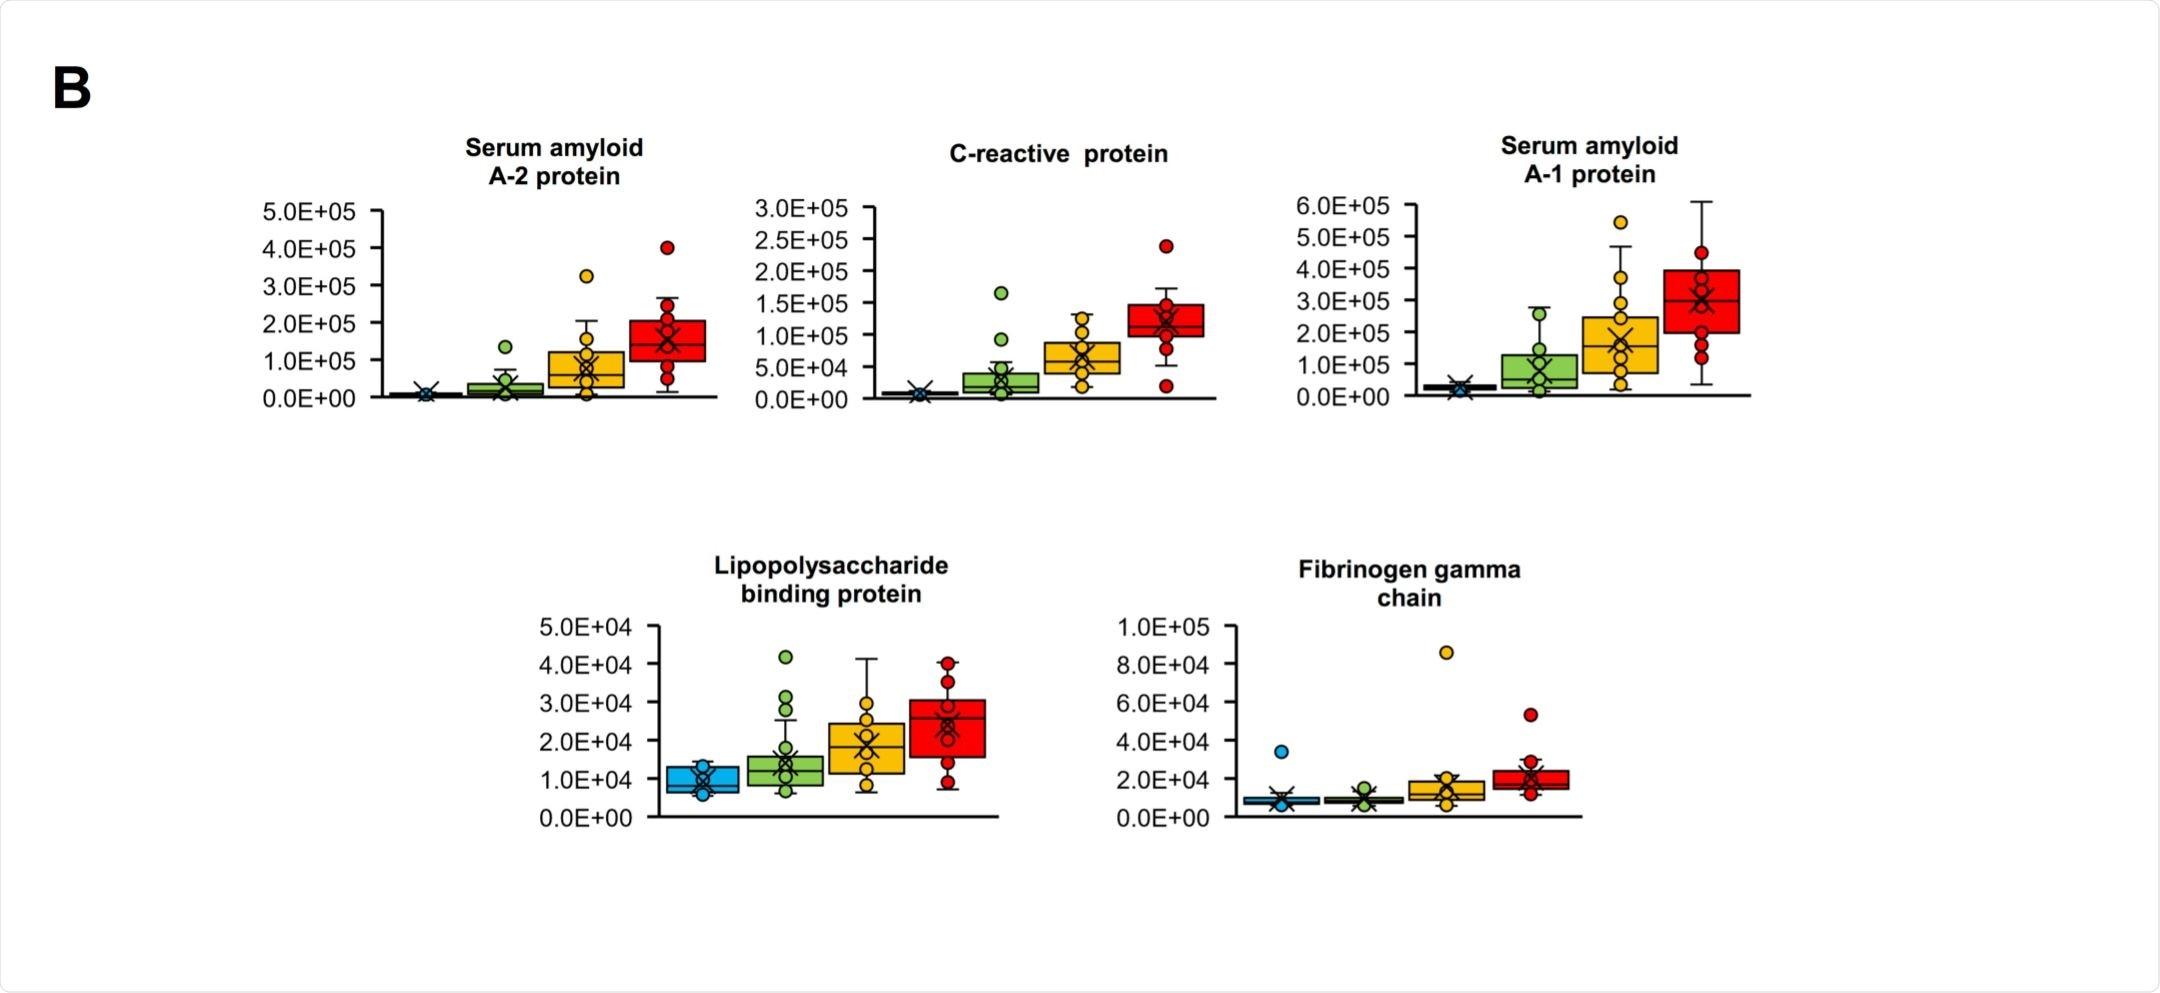 Upregulated proteins depending on COVID-19 severity